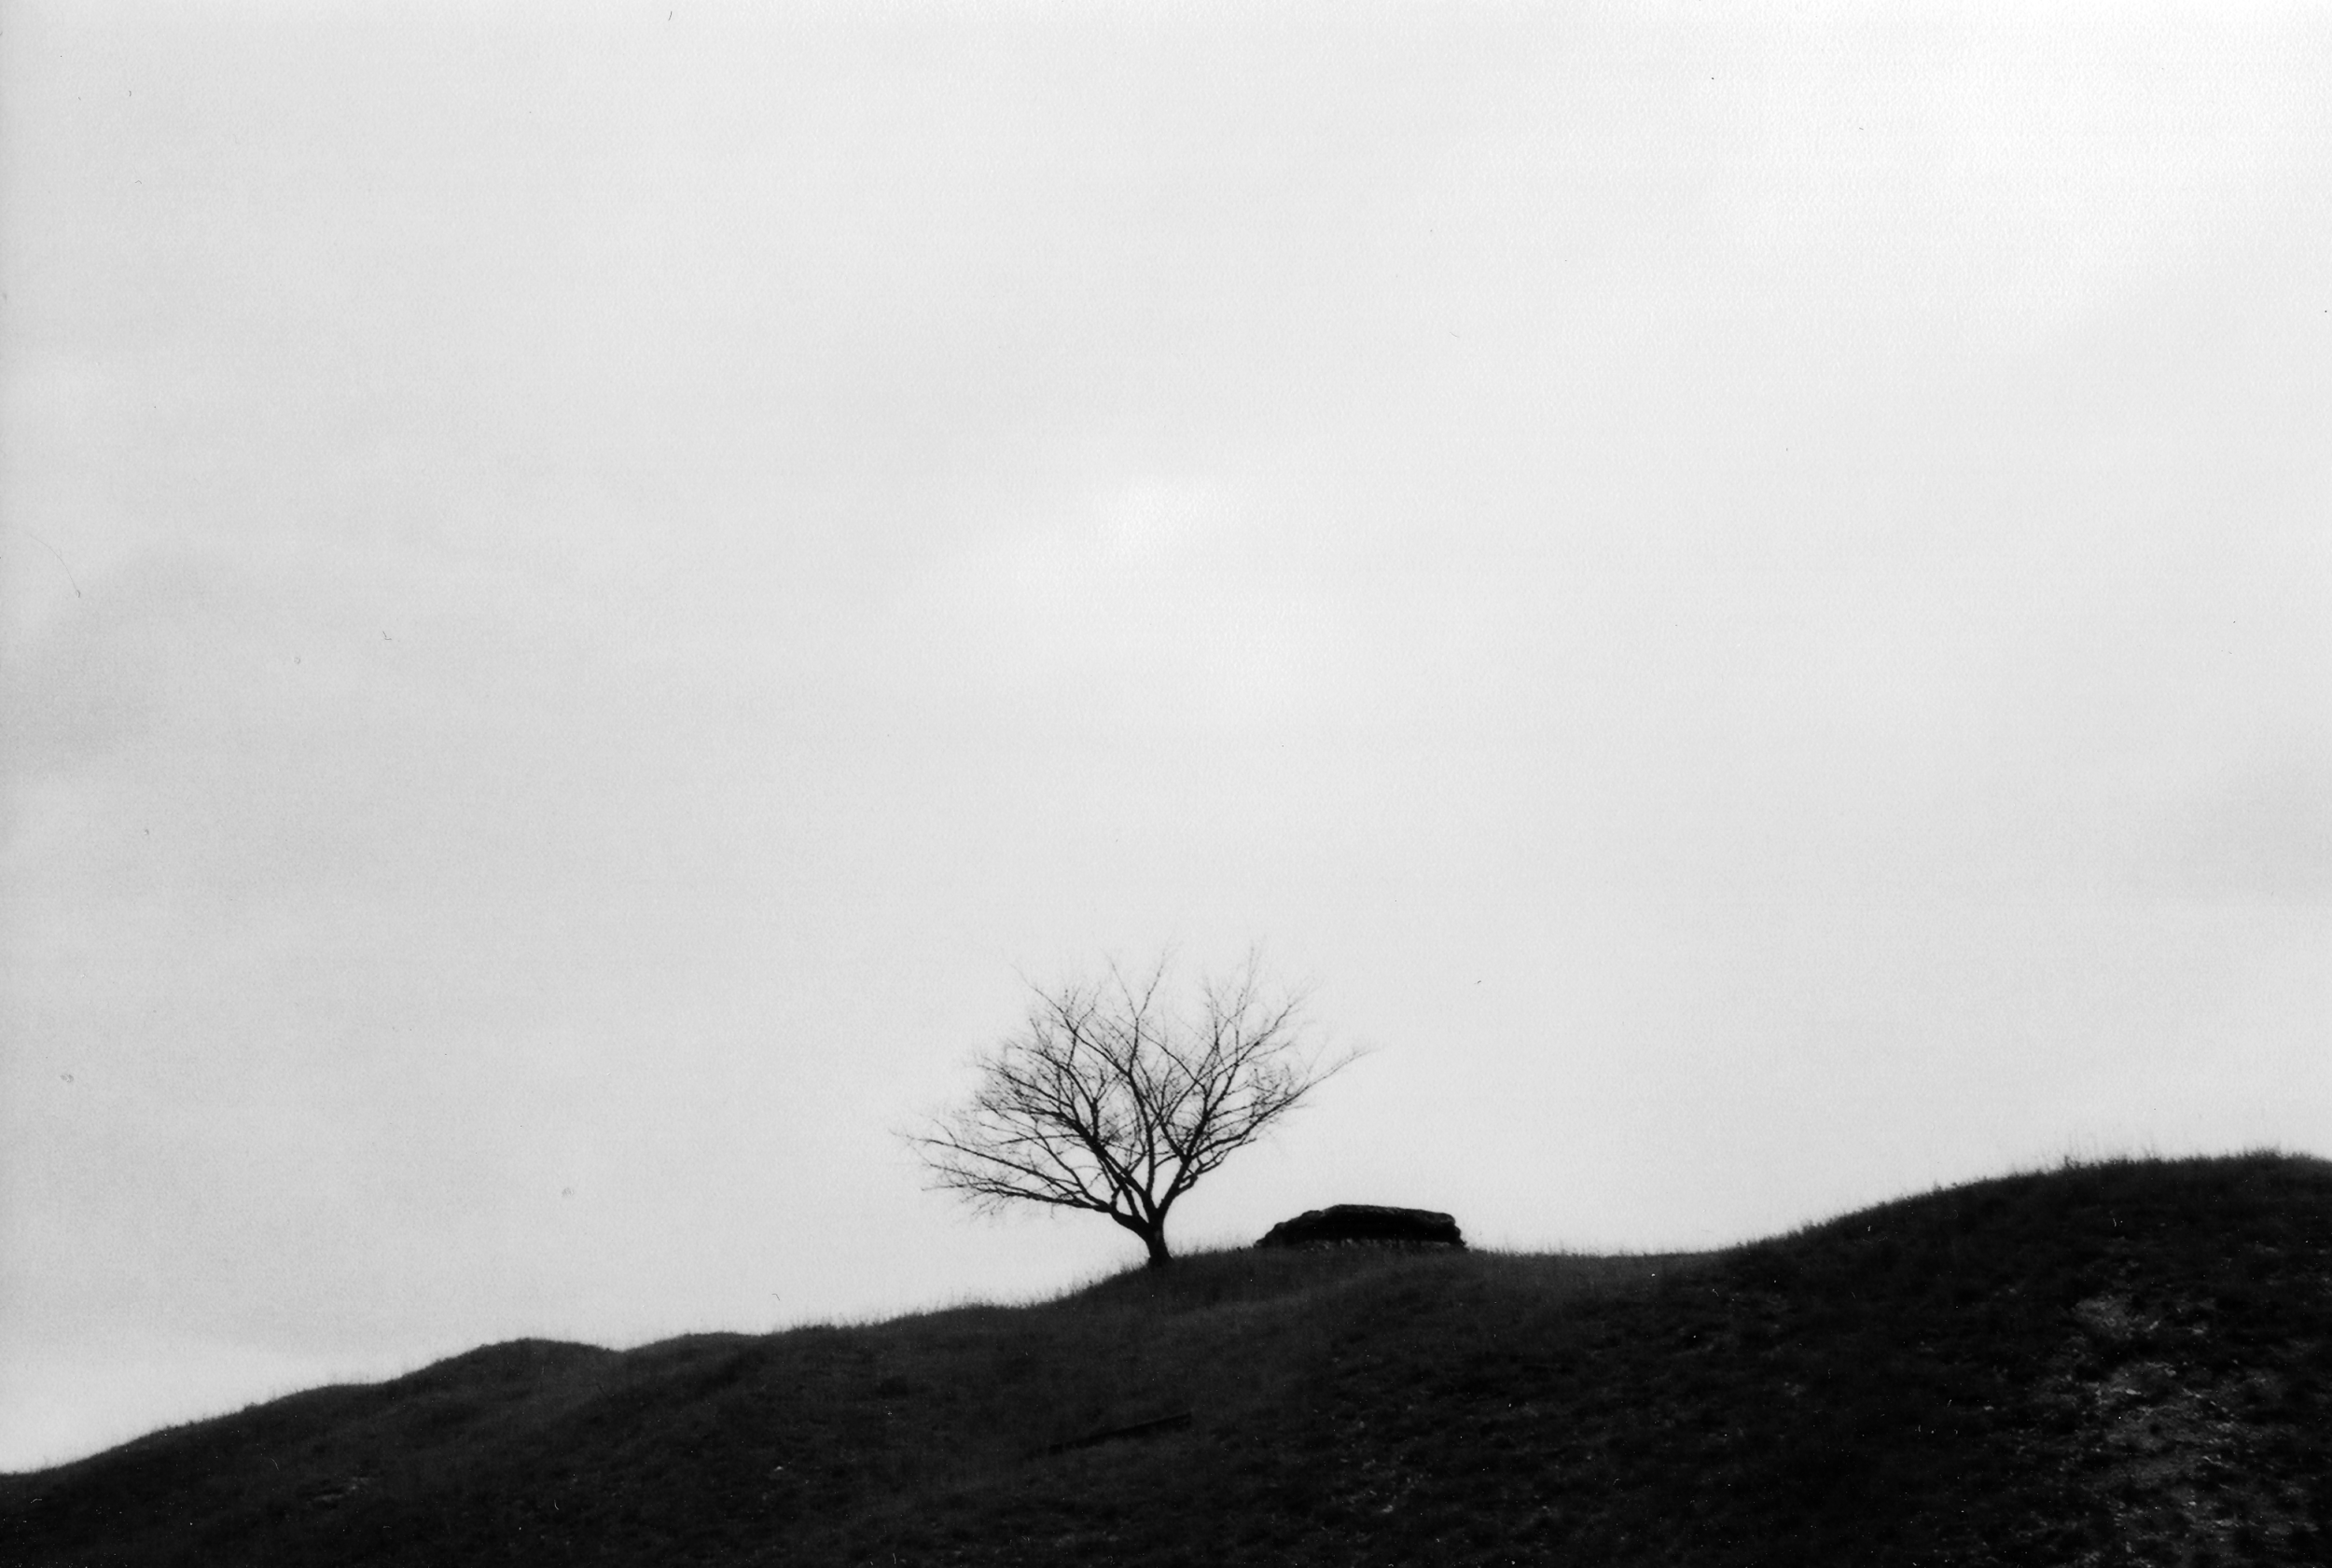 A tree atop Fort du Vaux, outside of Verdun, France.